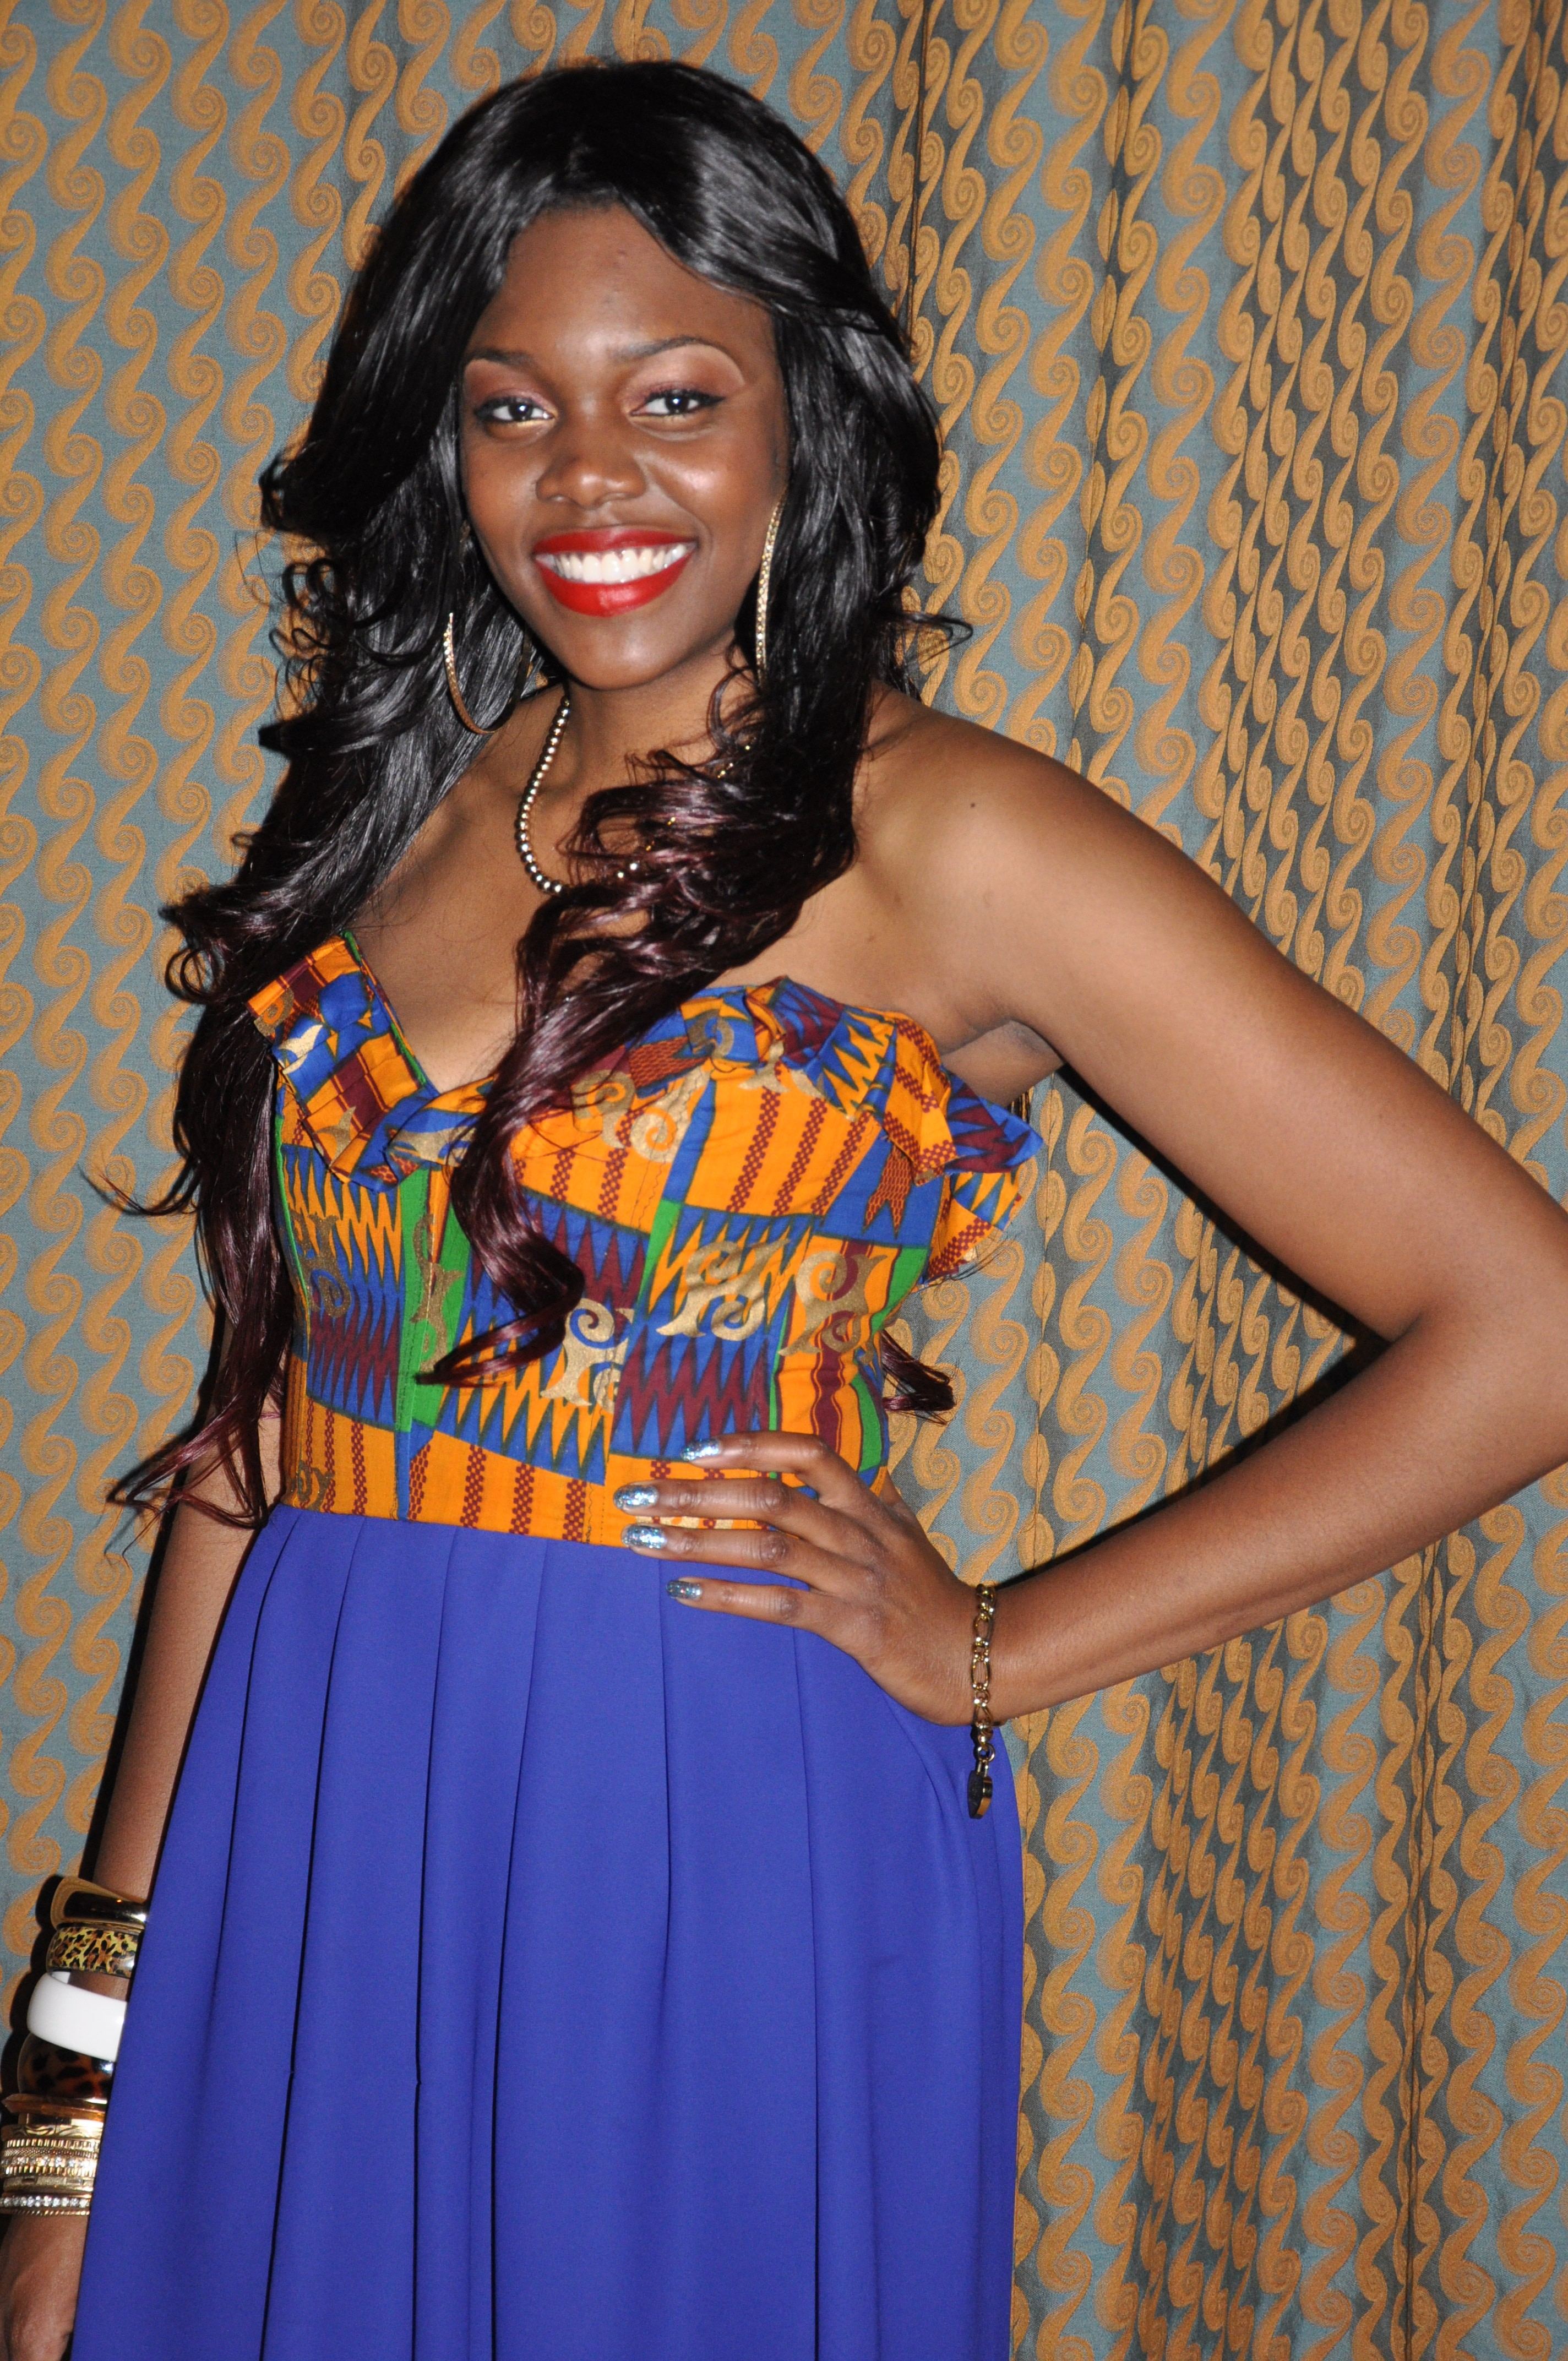 Ankara Print Chiffon Gown for the 2nd Annual Miss Africa PSU 2012 1